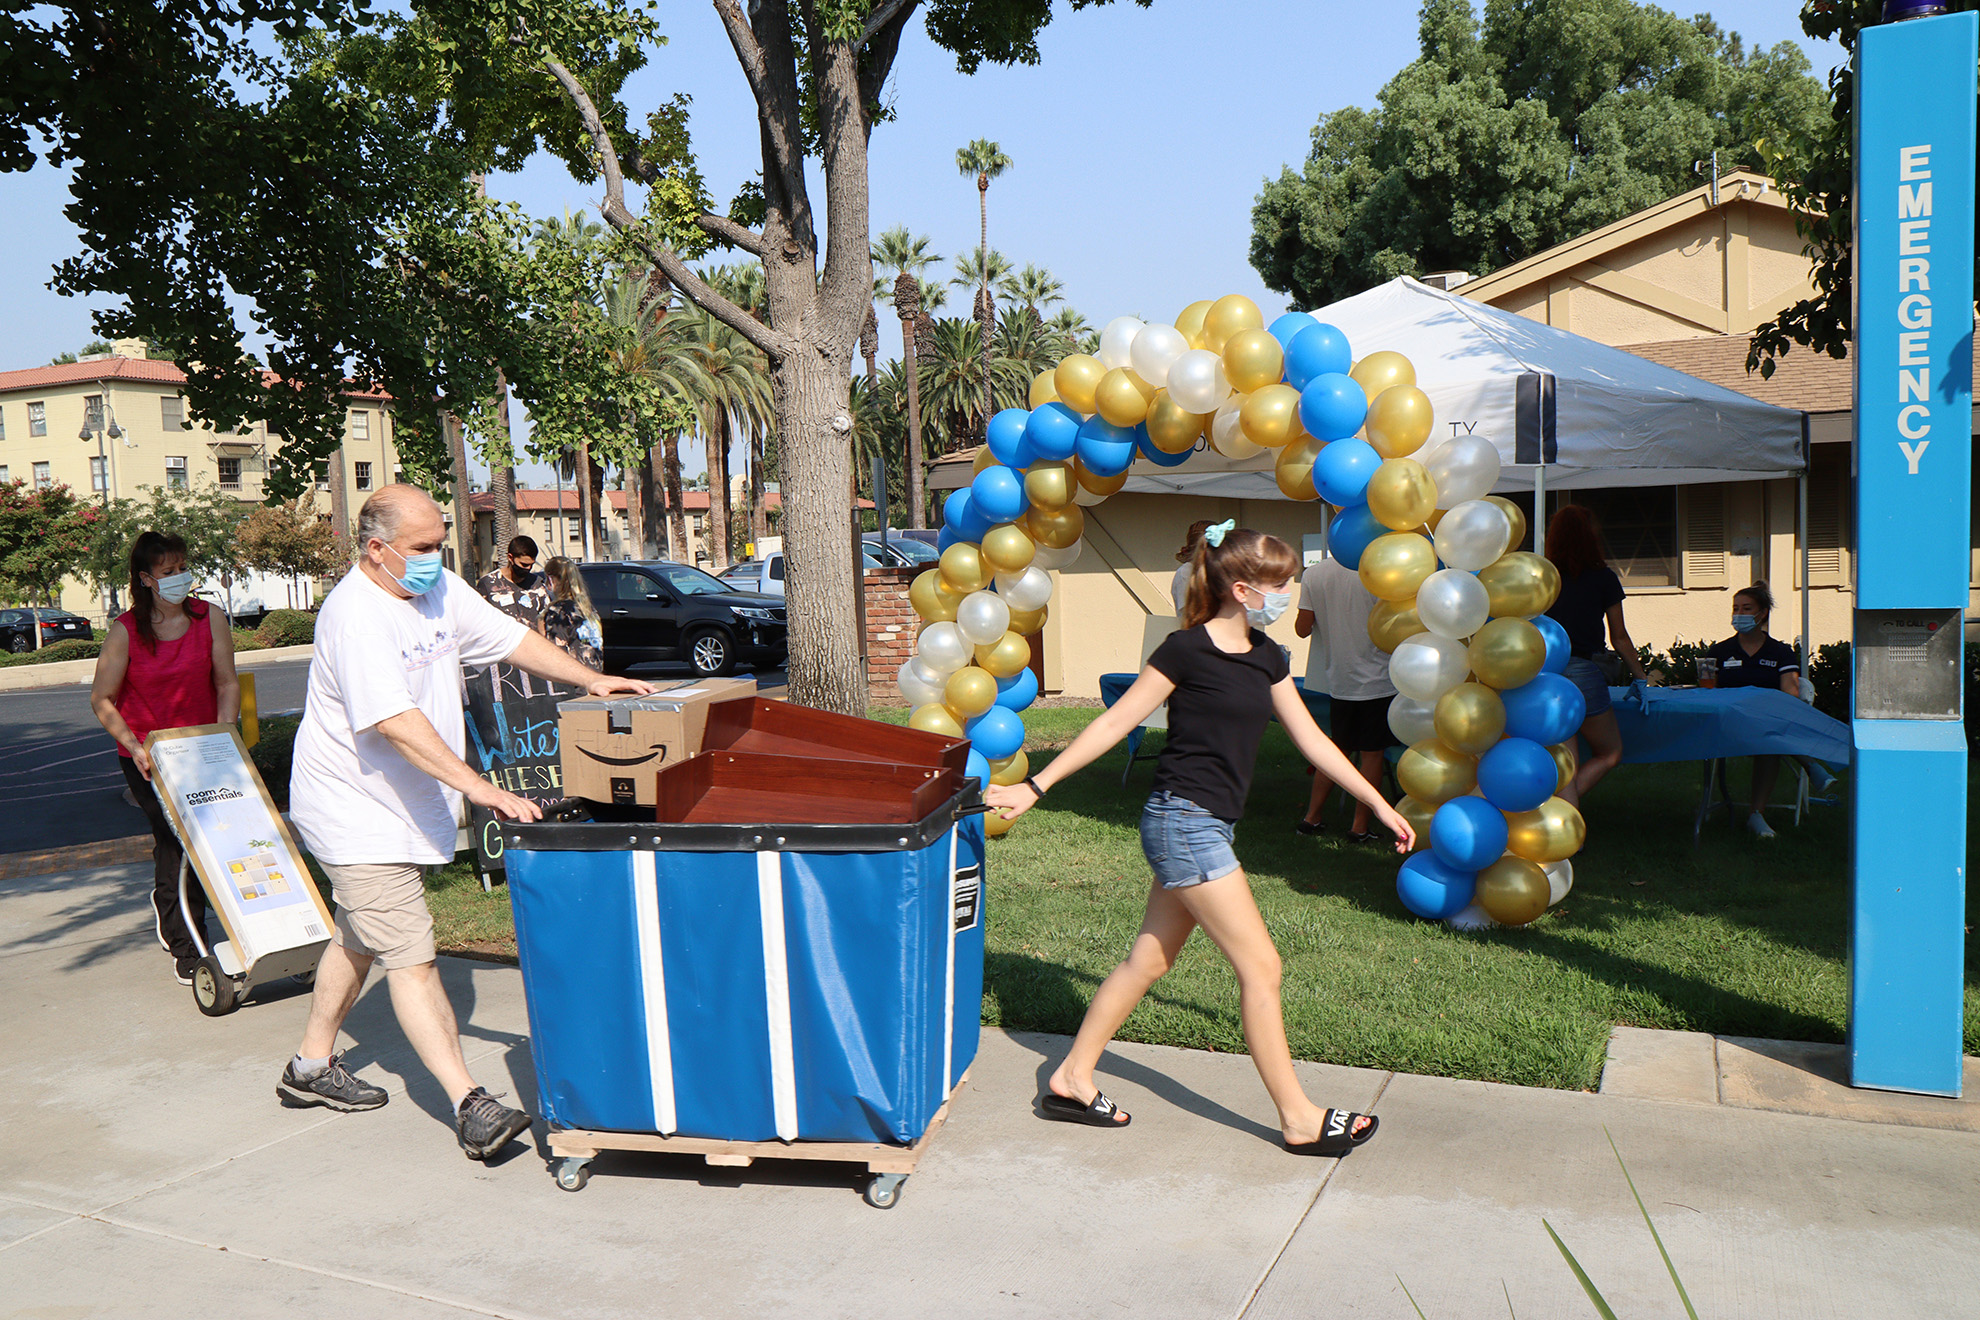 It was more than just the summer heat that gave the newest Lancers a warm welcome as they moved onto campus at California Baptist University on Aug. 20-21.